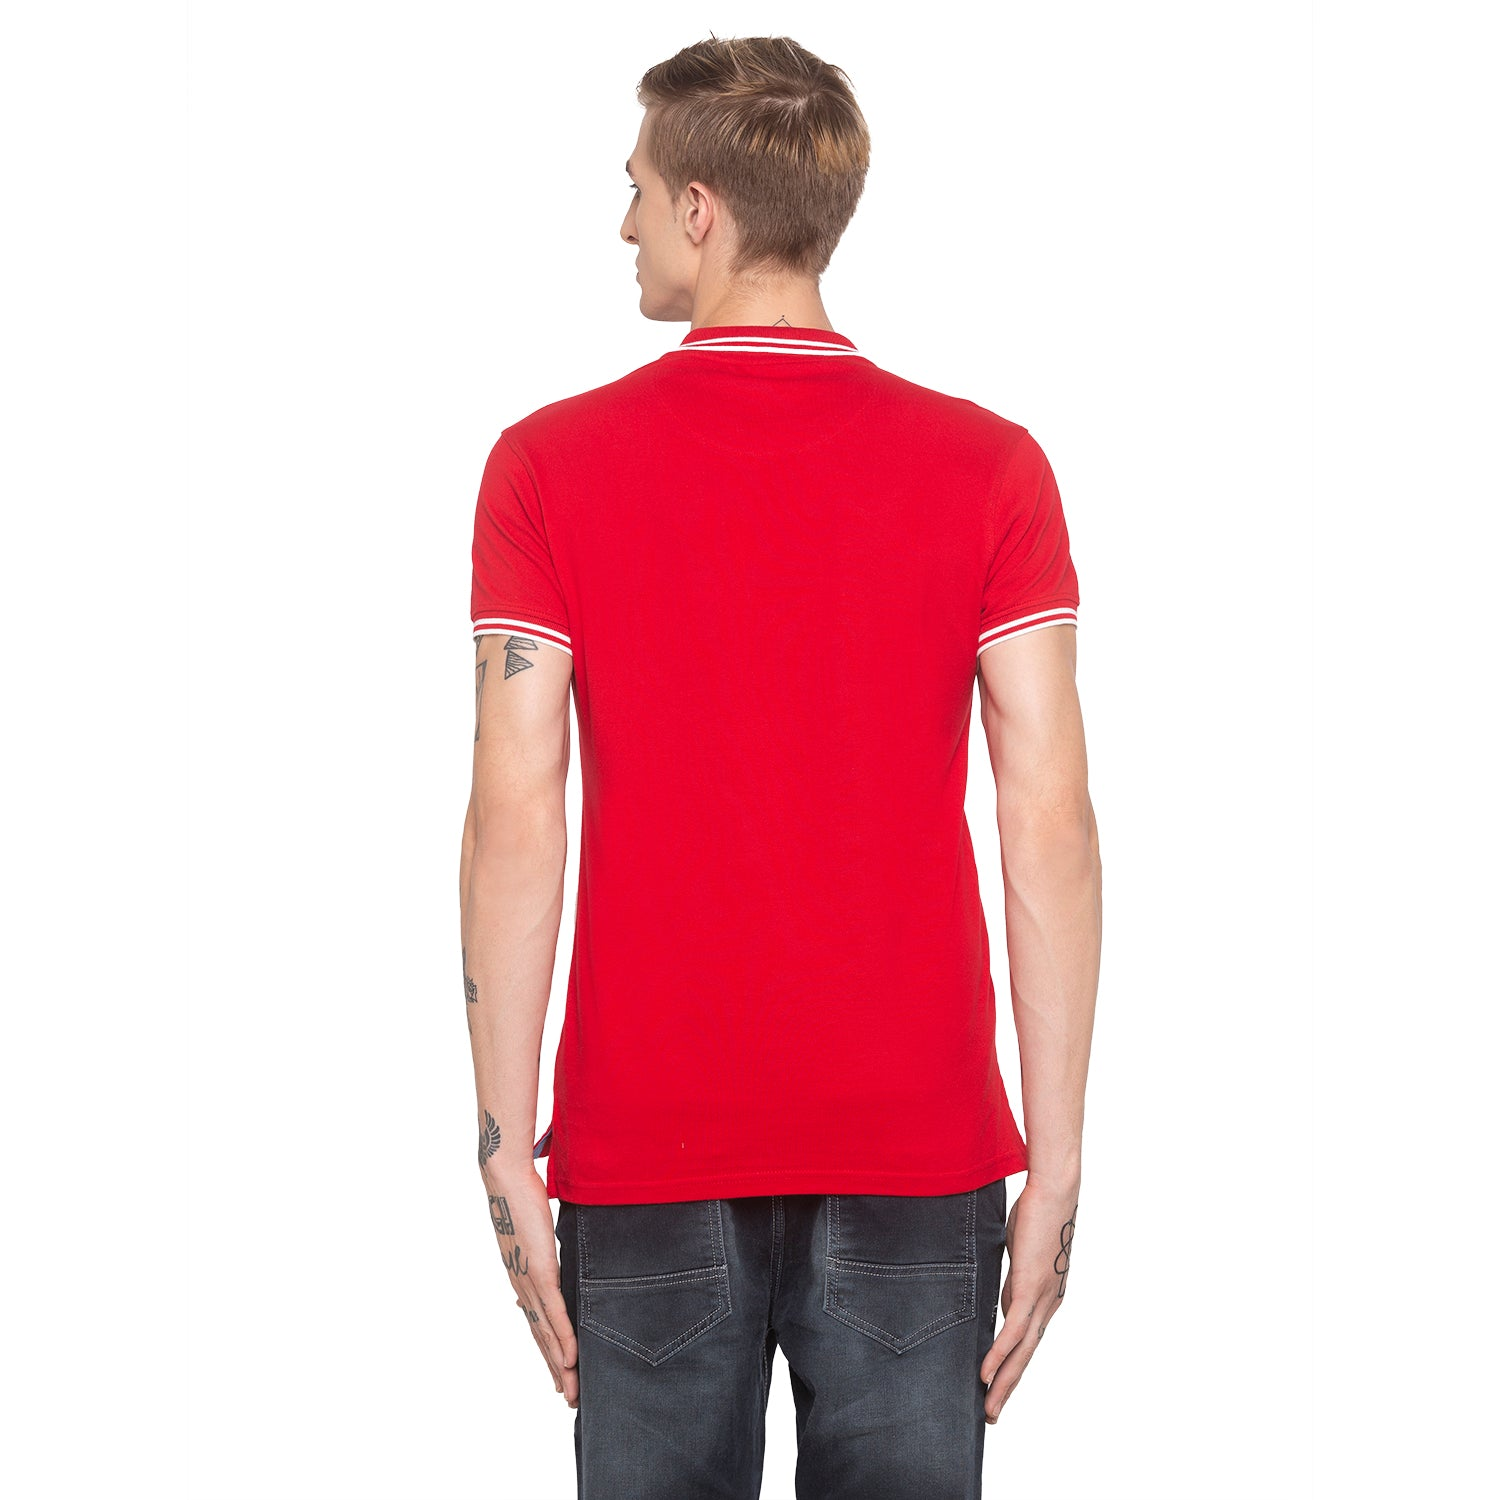 Zipper Polo Neck Solid Red T-shirt-3